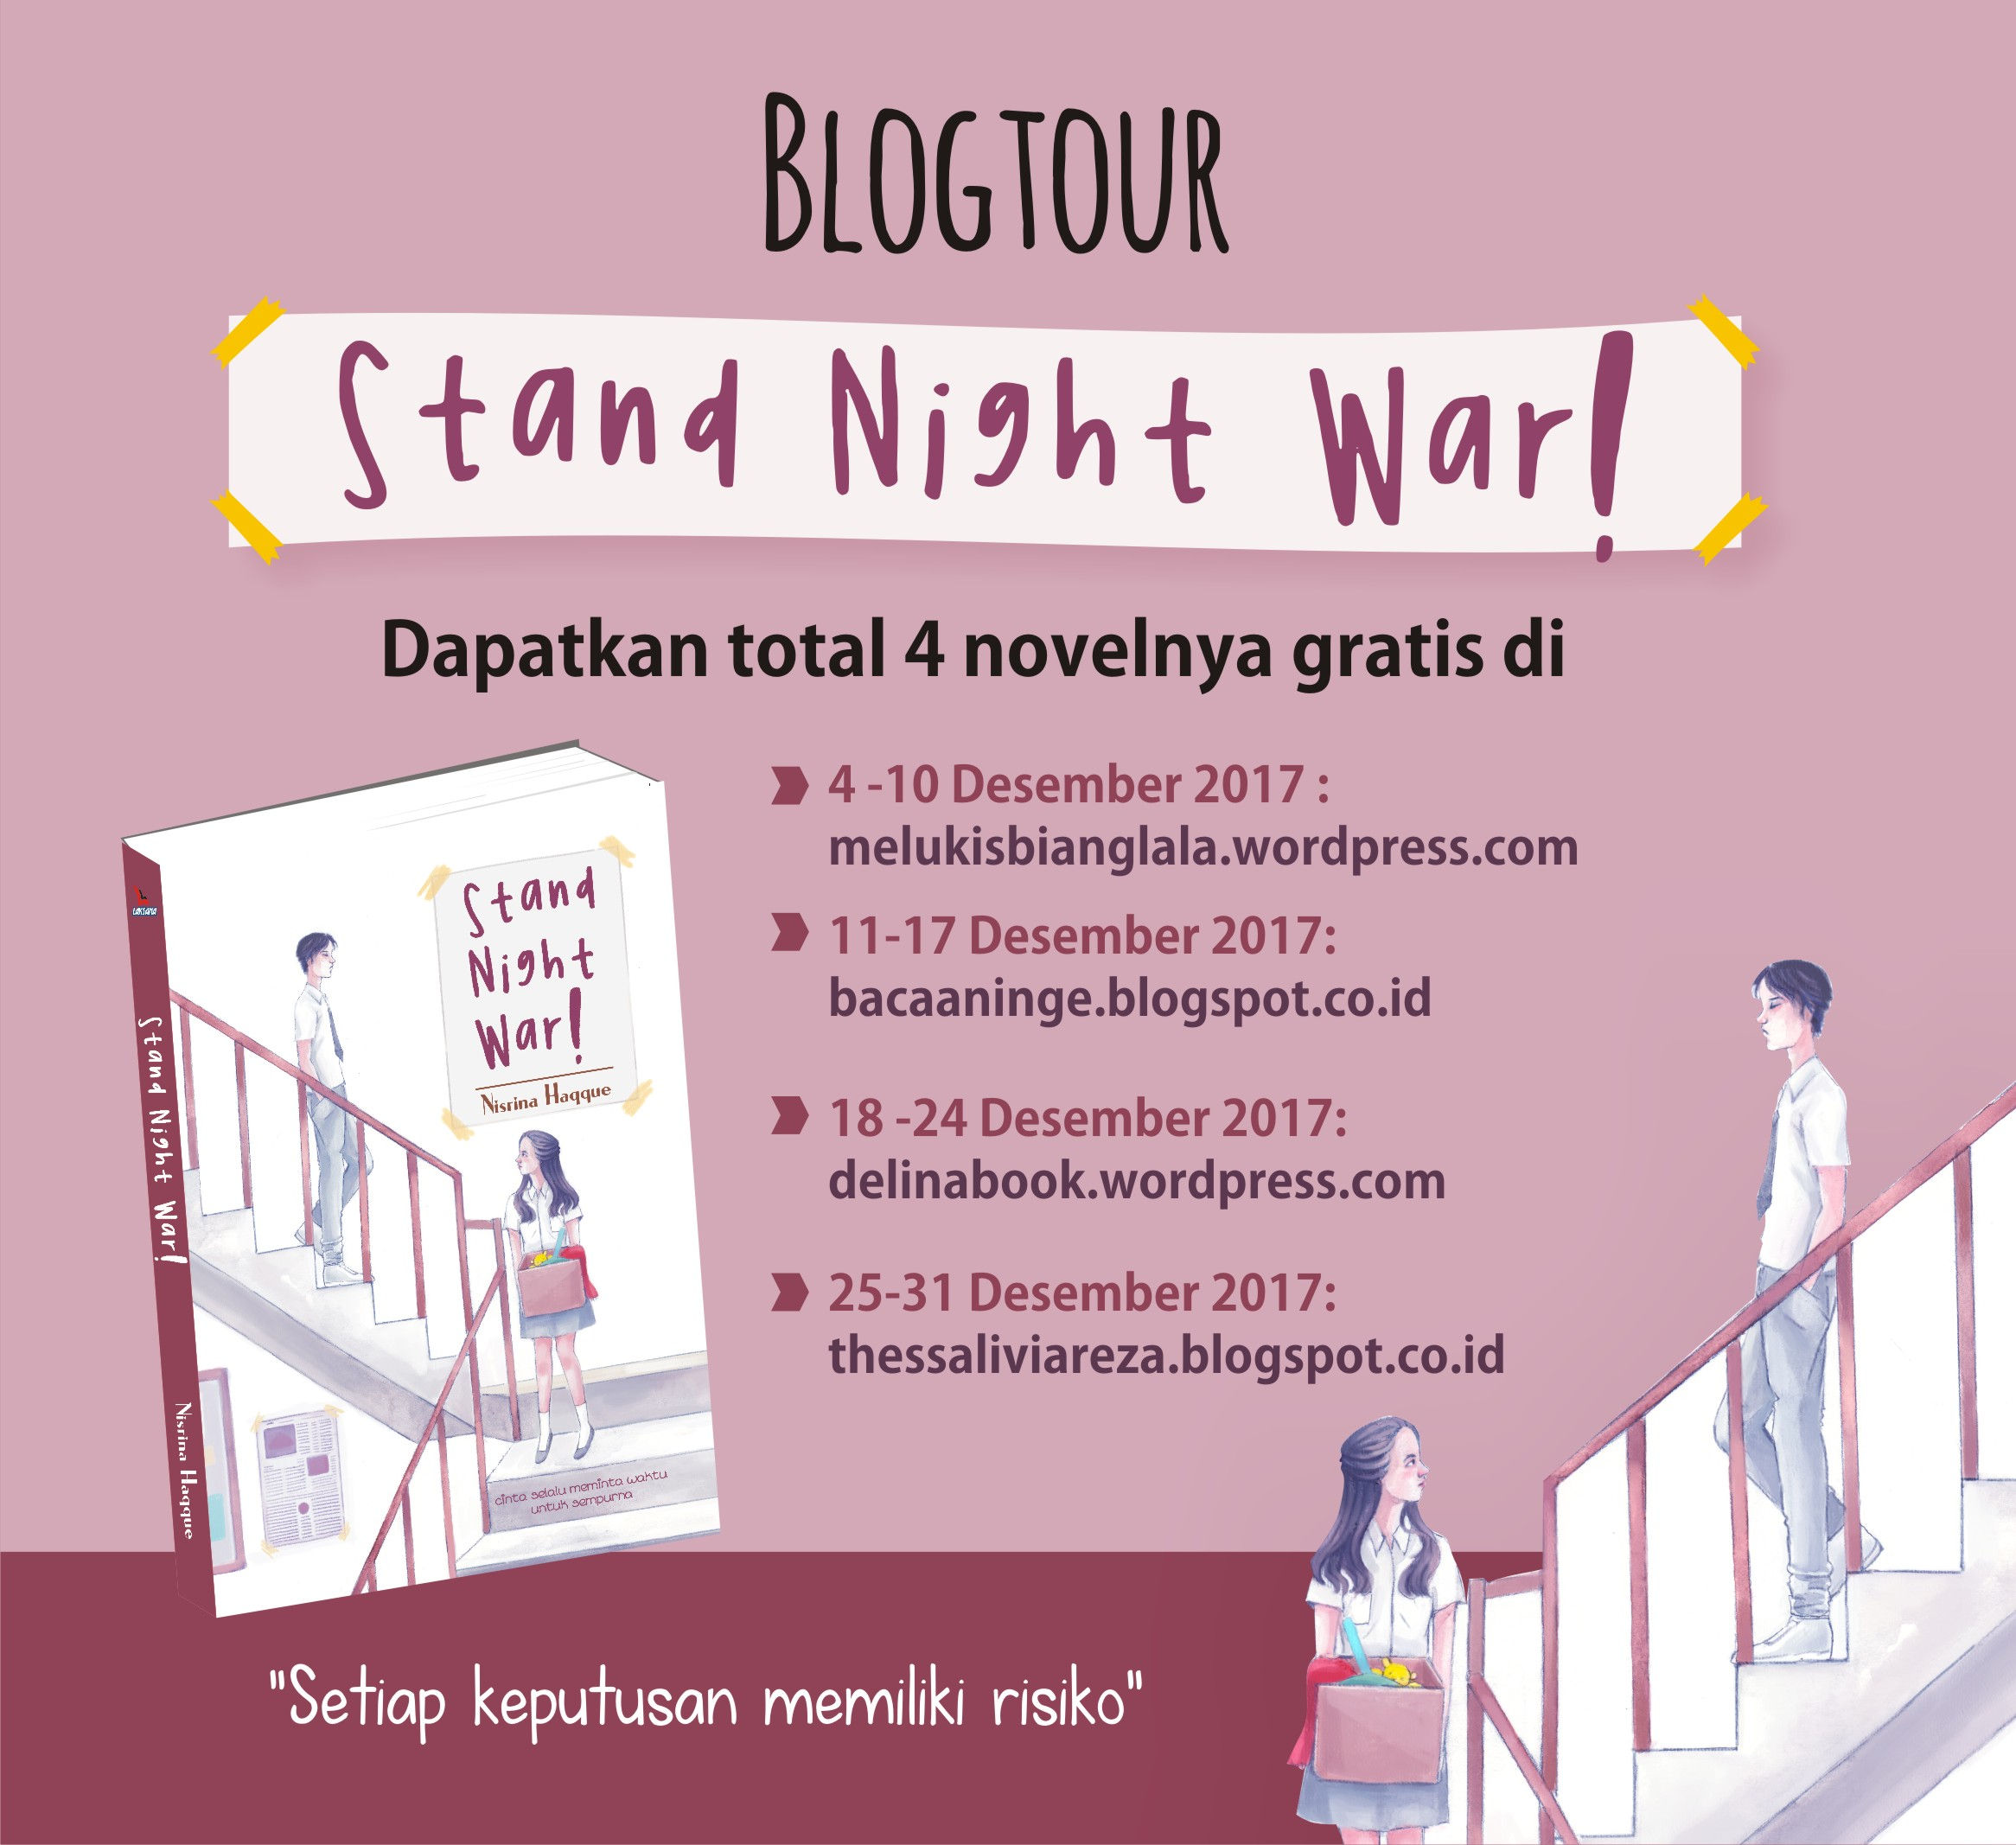 Blog Tour Stand Night War Selama Bulan Desember 2017